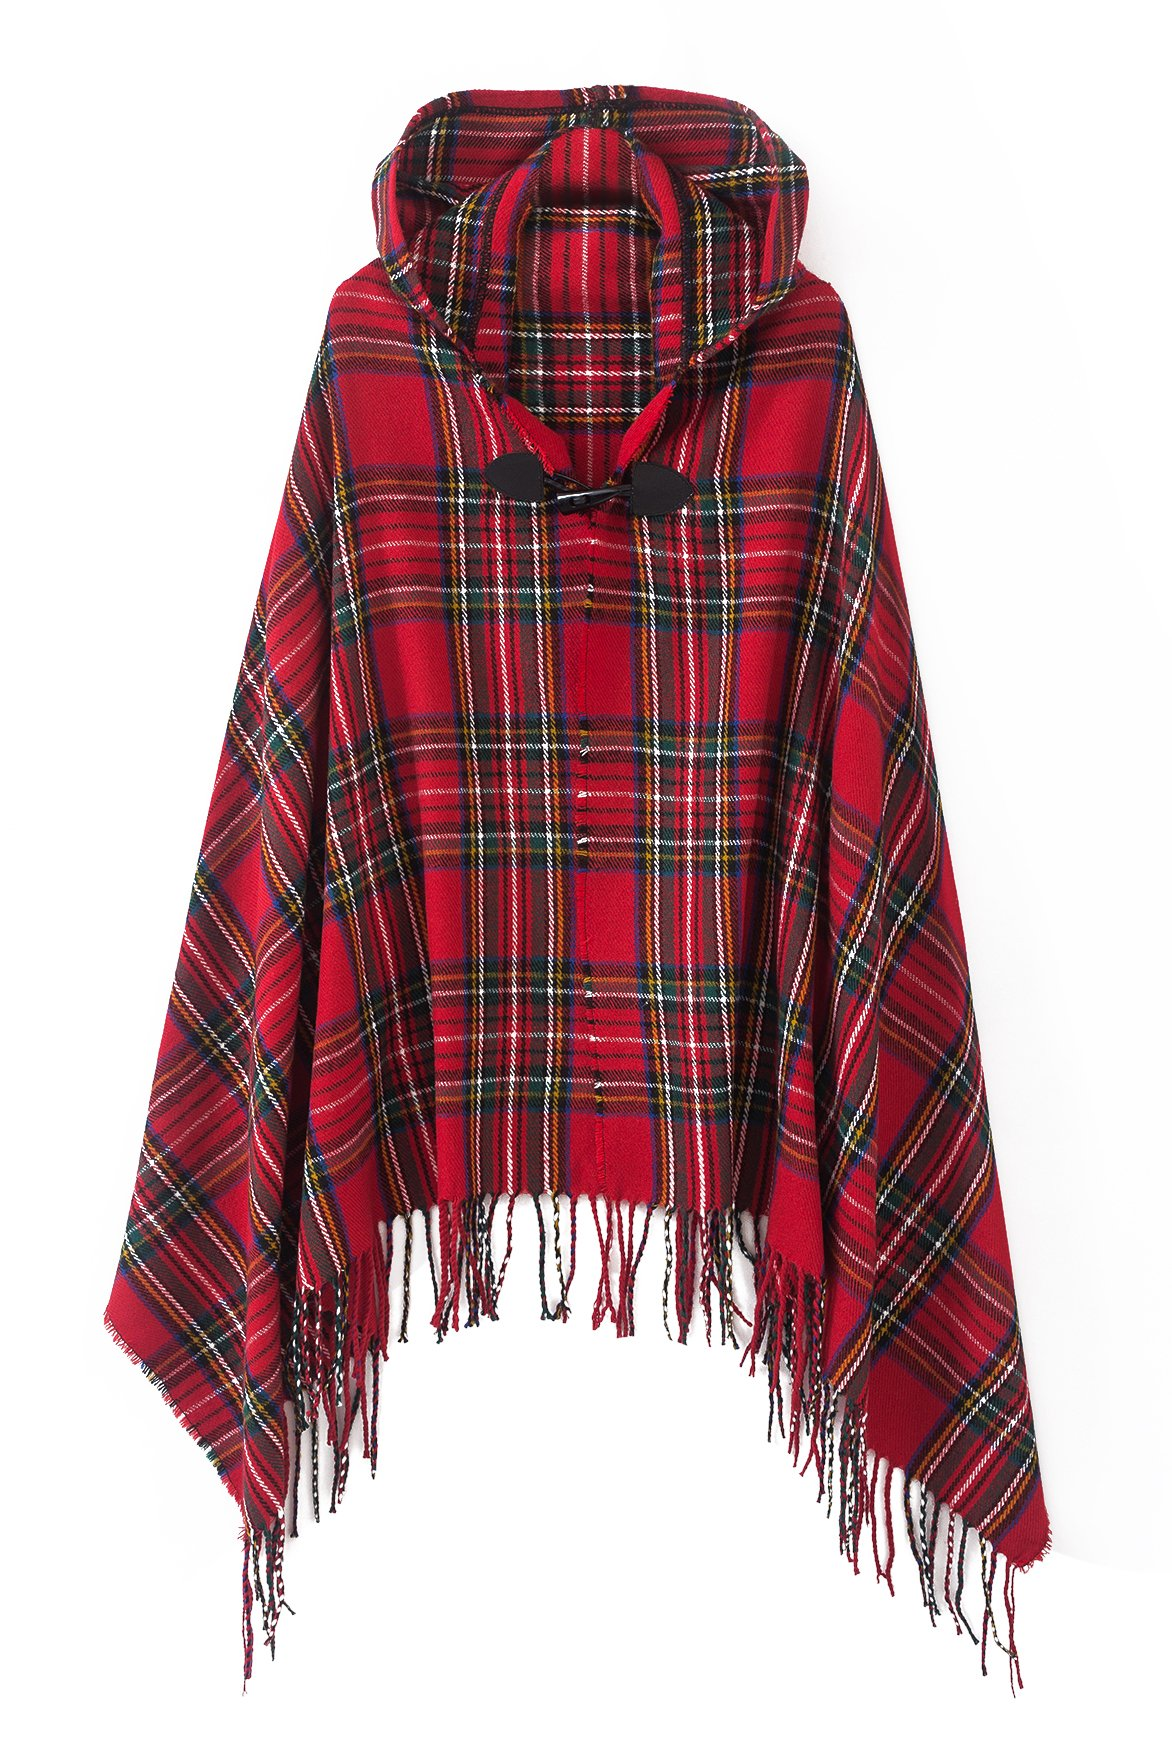 Women's Vintage Plaid Knitted Tassel Poncho Shawl Cape Button Cardigan (One Size, Series 2 Red)